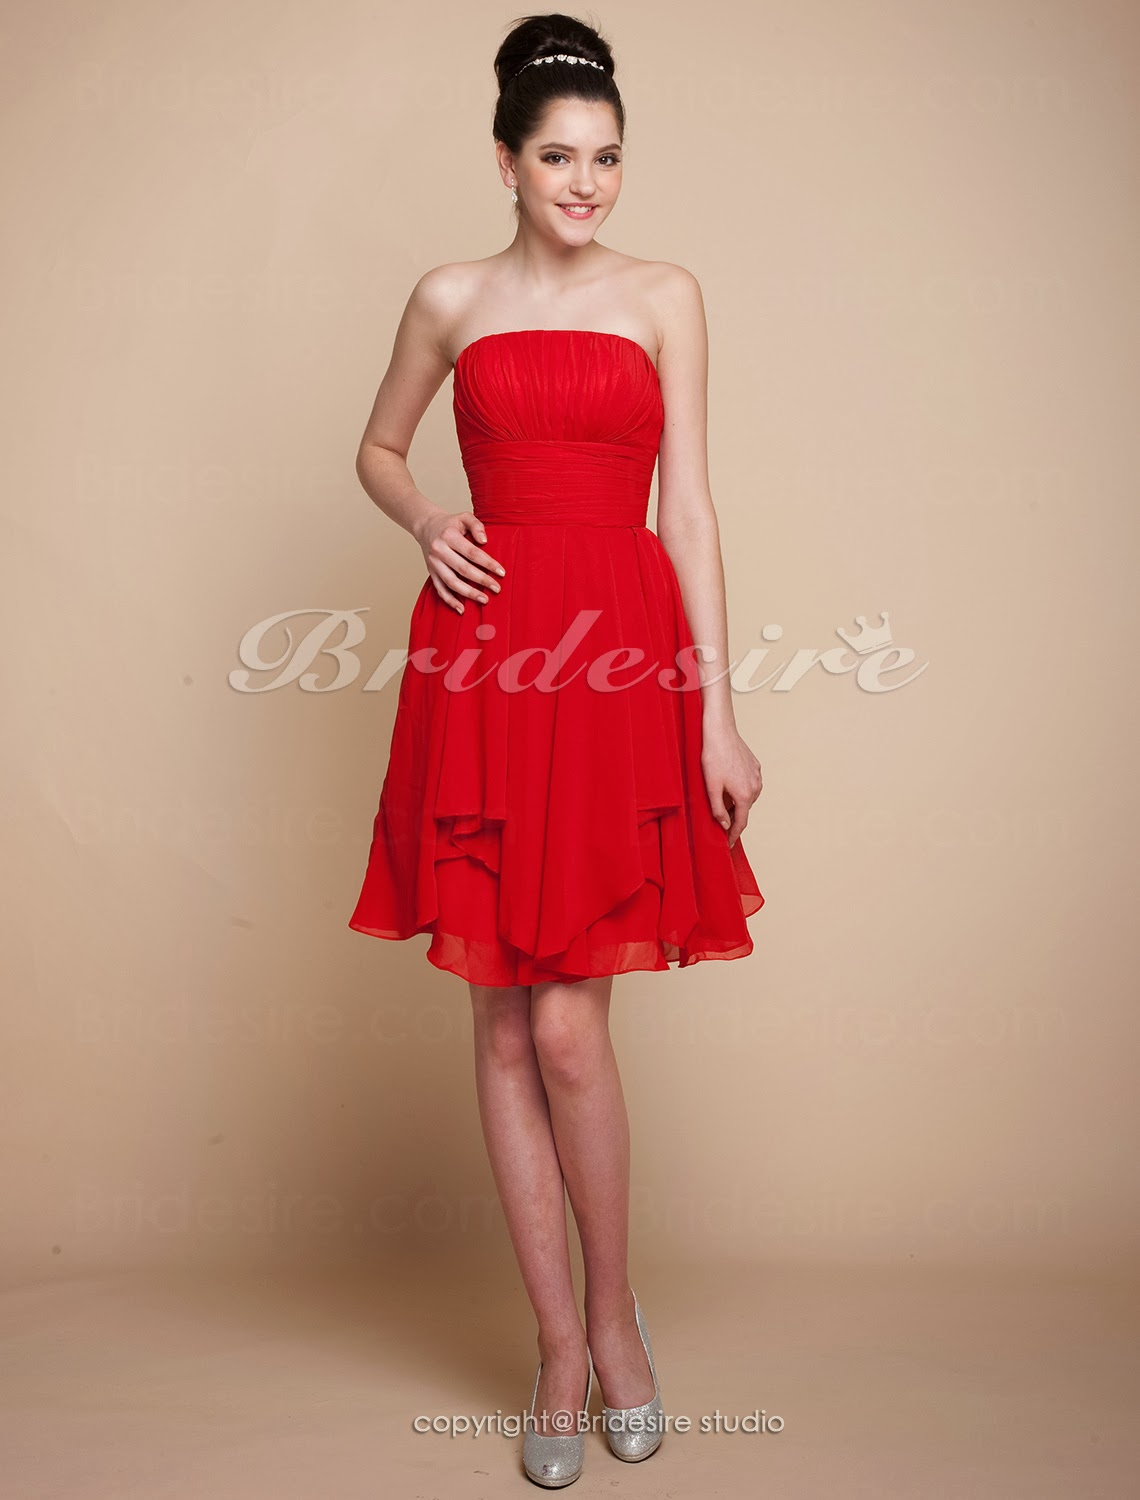 Exquisitely Fashioned All Of The Wedding Dresses Bridesmaid Homecoming And Prom Even Mother Bride Are Made According